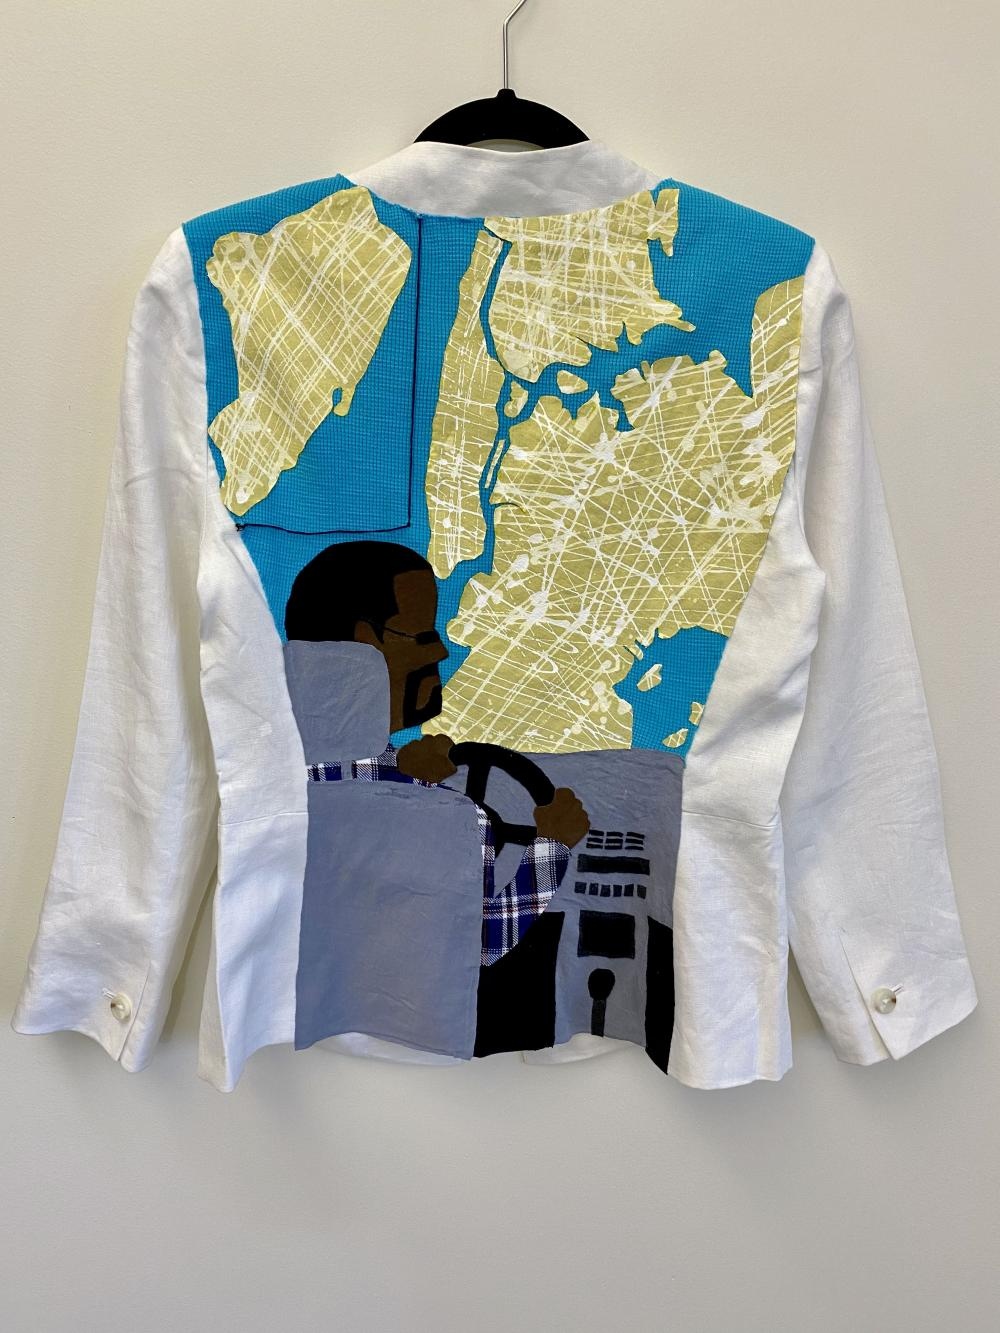 The back of a white blazer with a man driving a car looking out to a map of New York City.